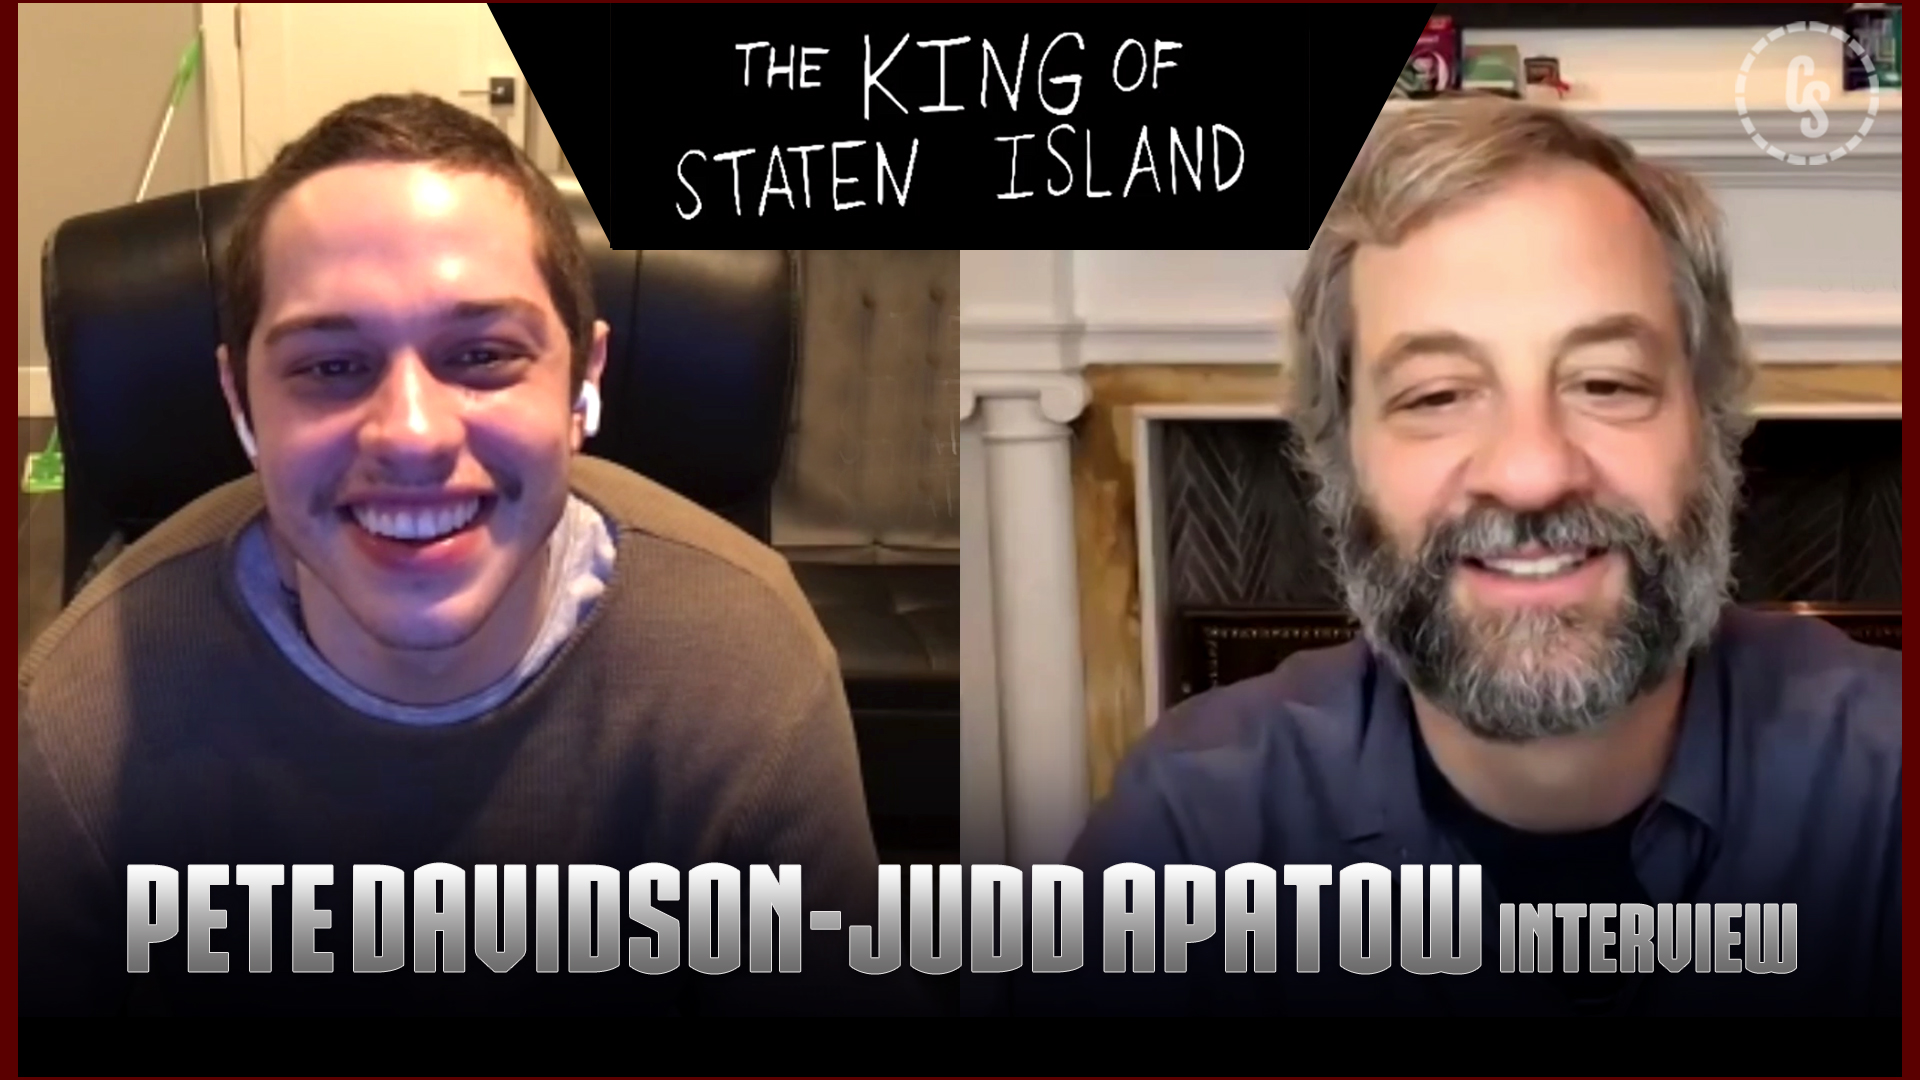 CS Video: The King of Staten Island Interviews With Pete Davidson & Judd Apatow